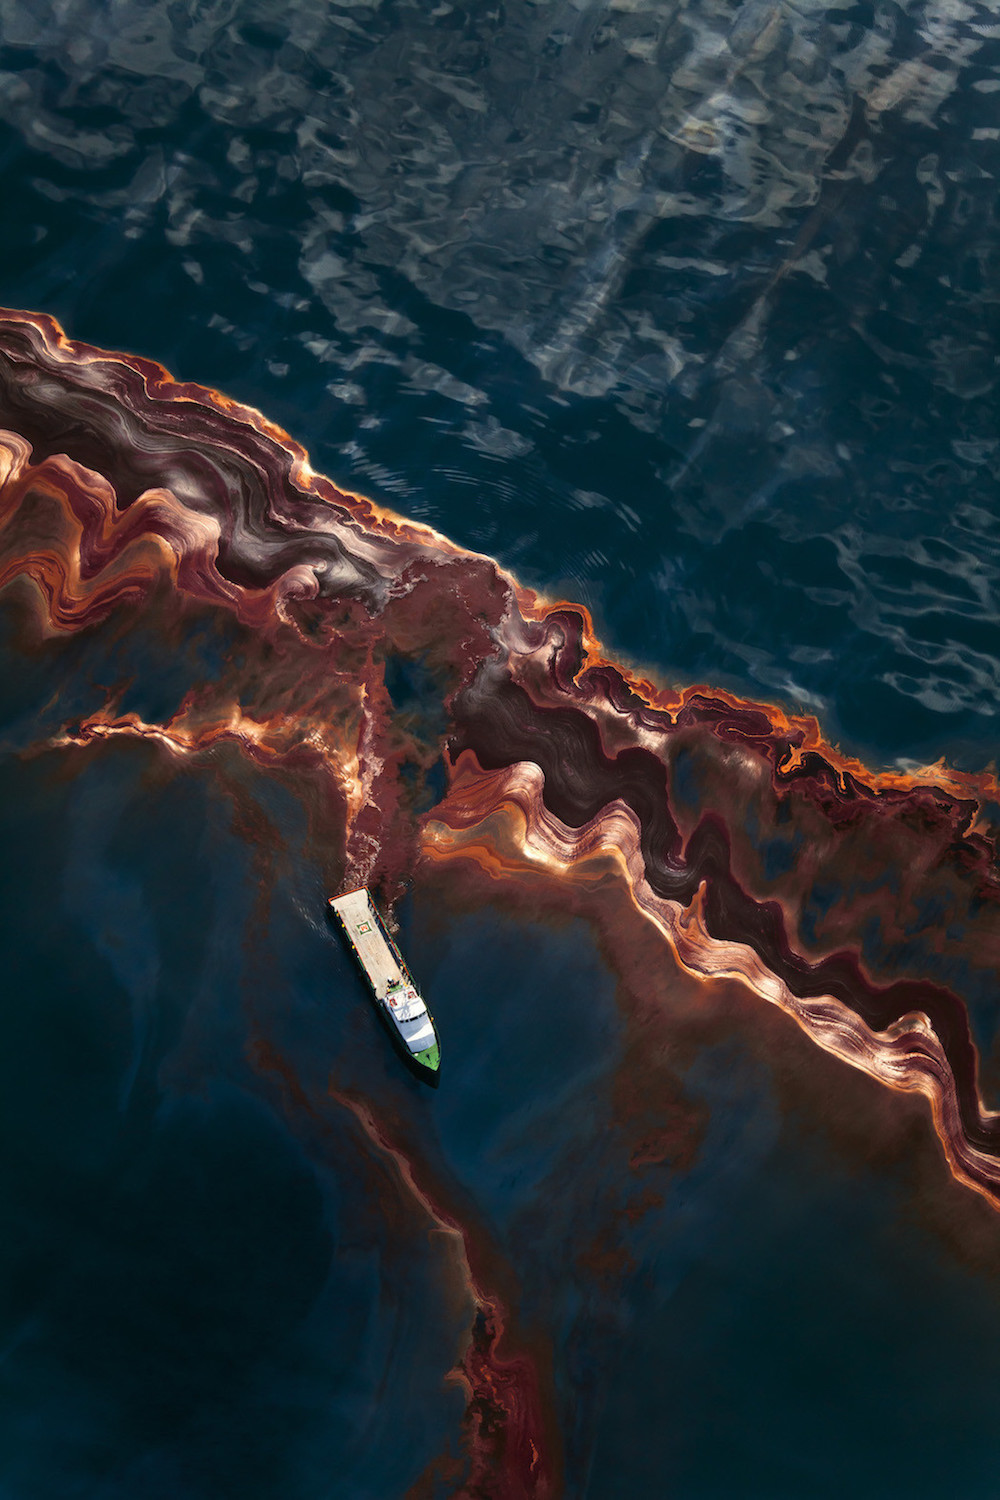 May 6th, 2010, Aerial view of the oil leaked from the Deepwater Horizon wellhead